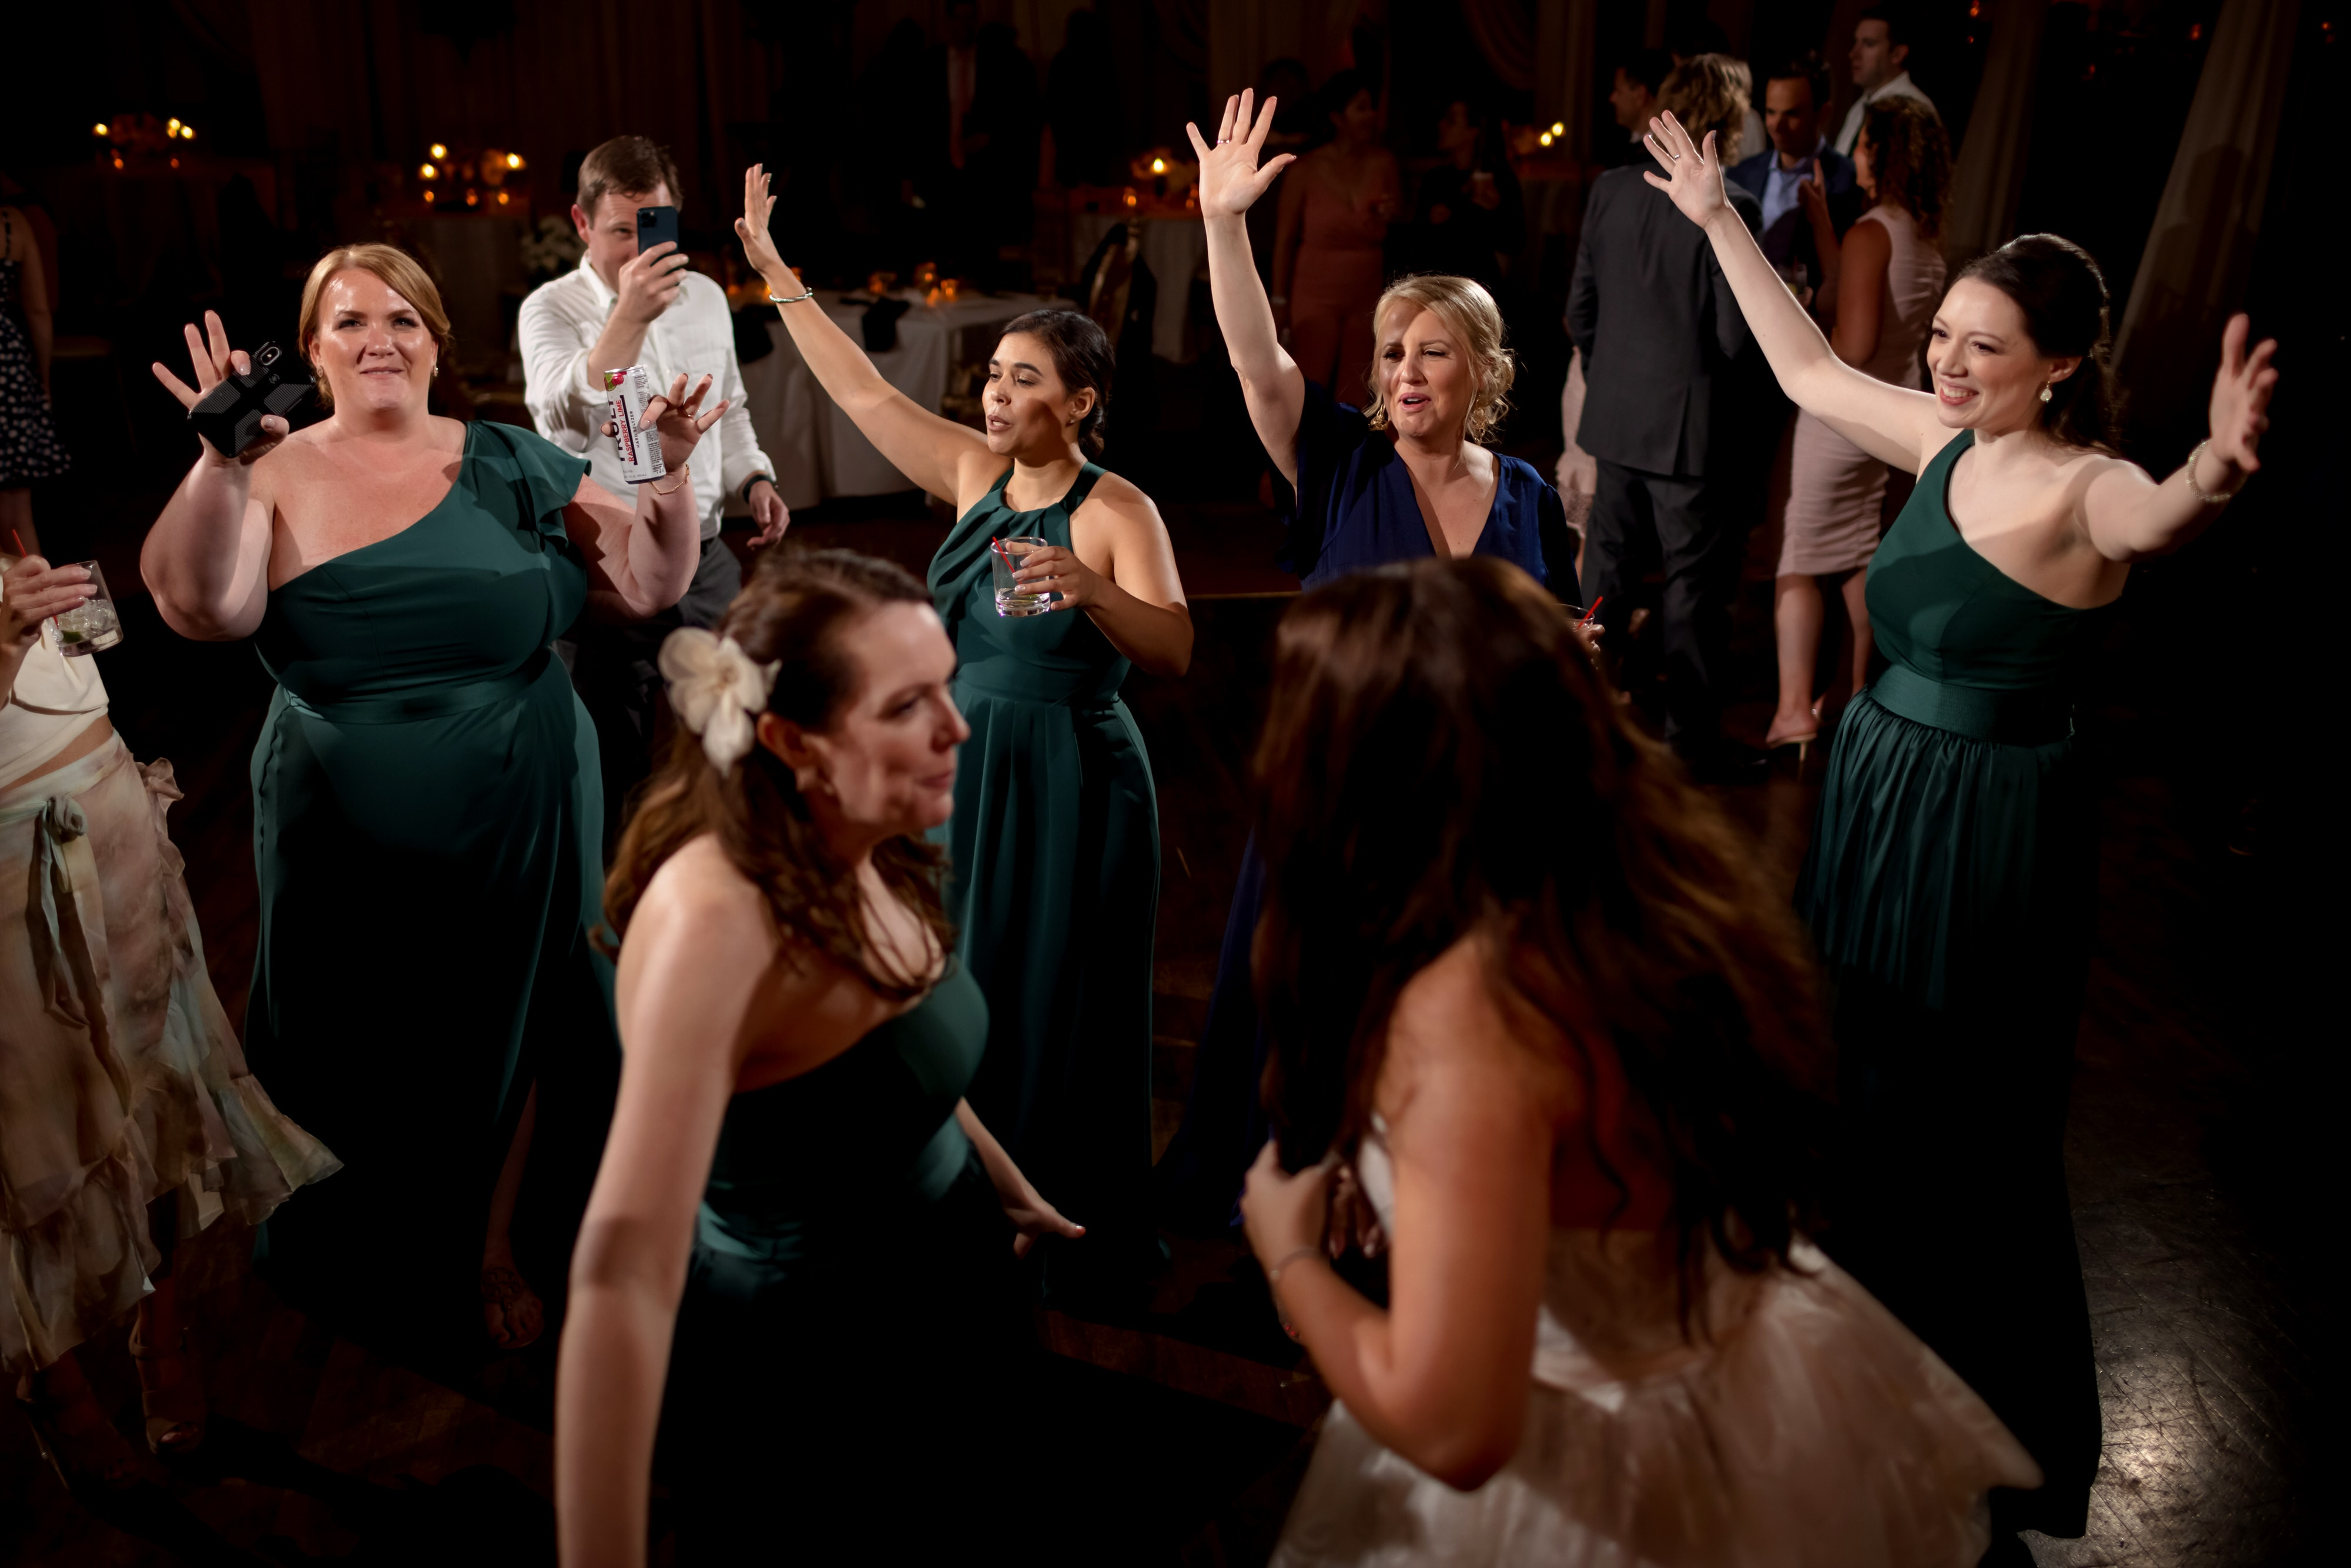 guests dance during wedding reception at Stan Mansion in Chicago